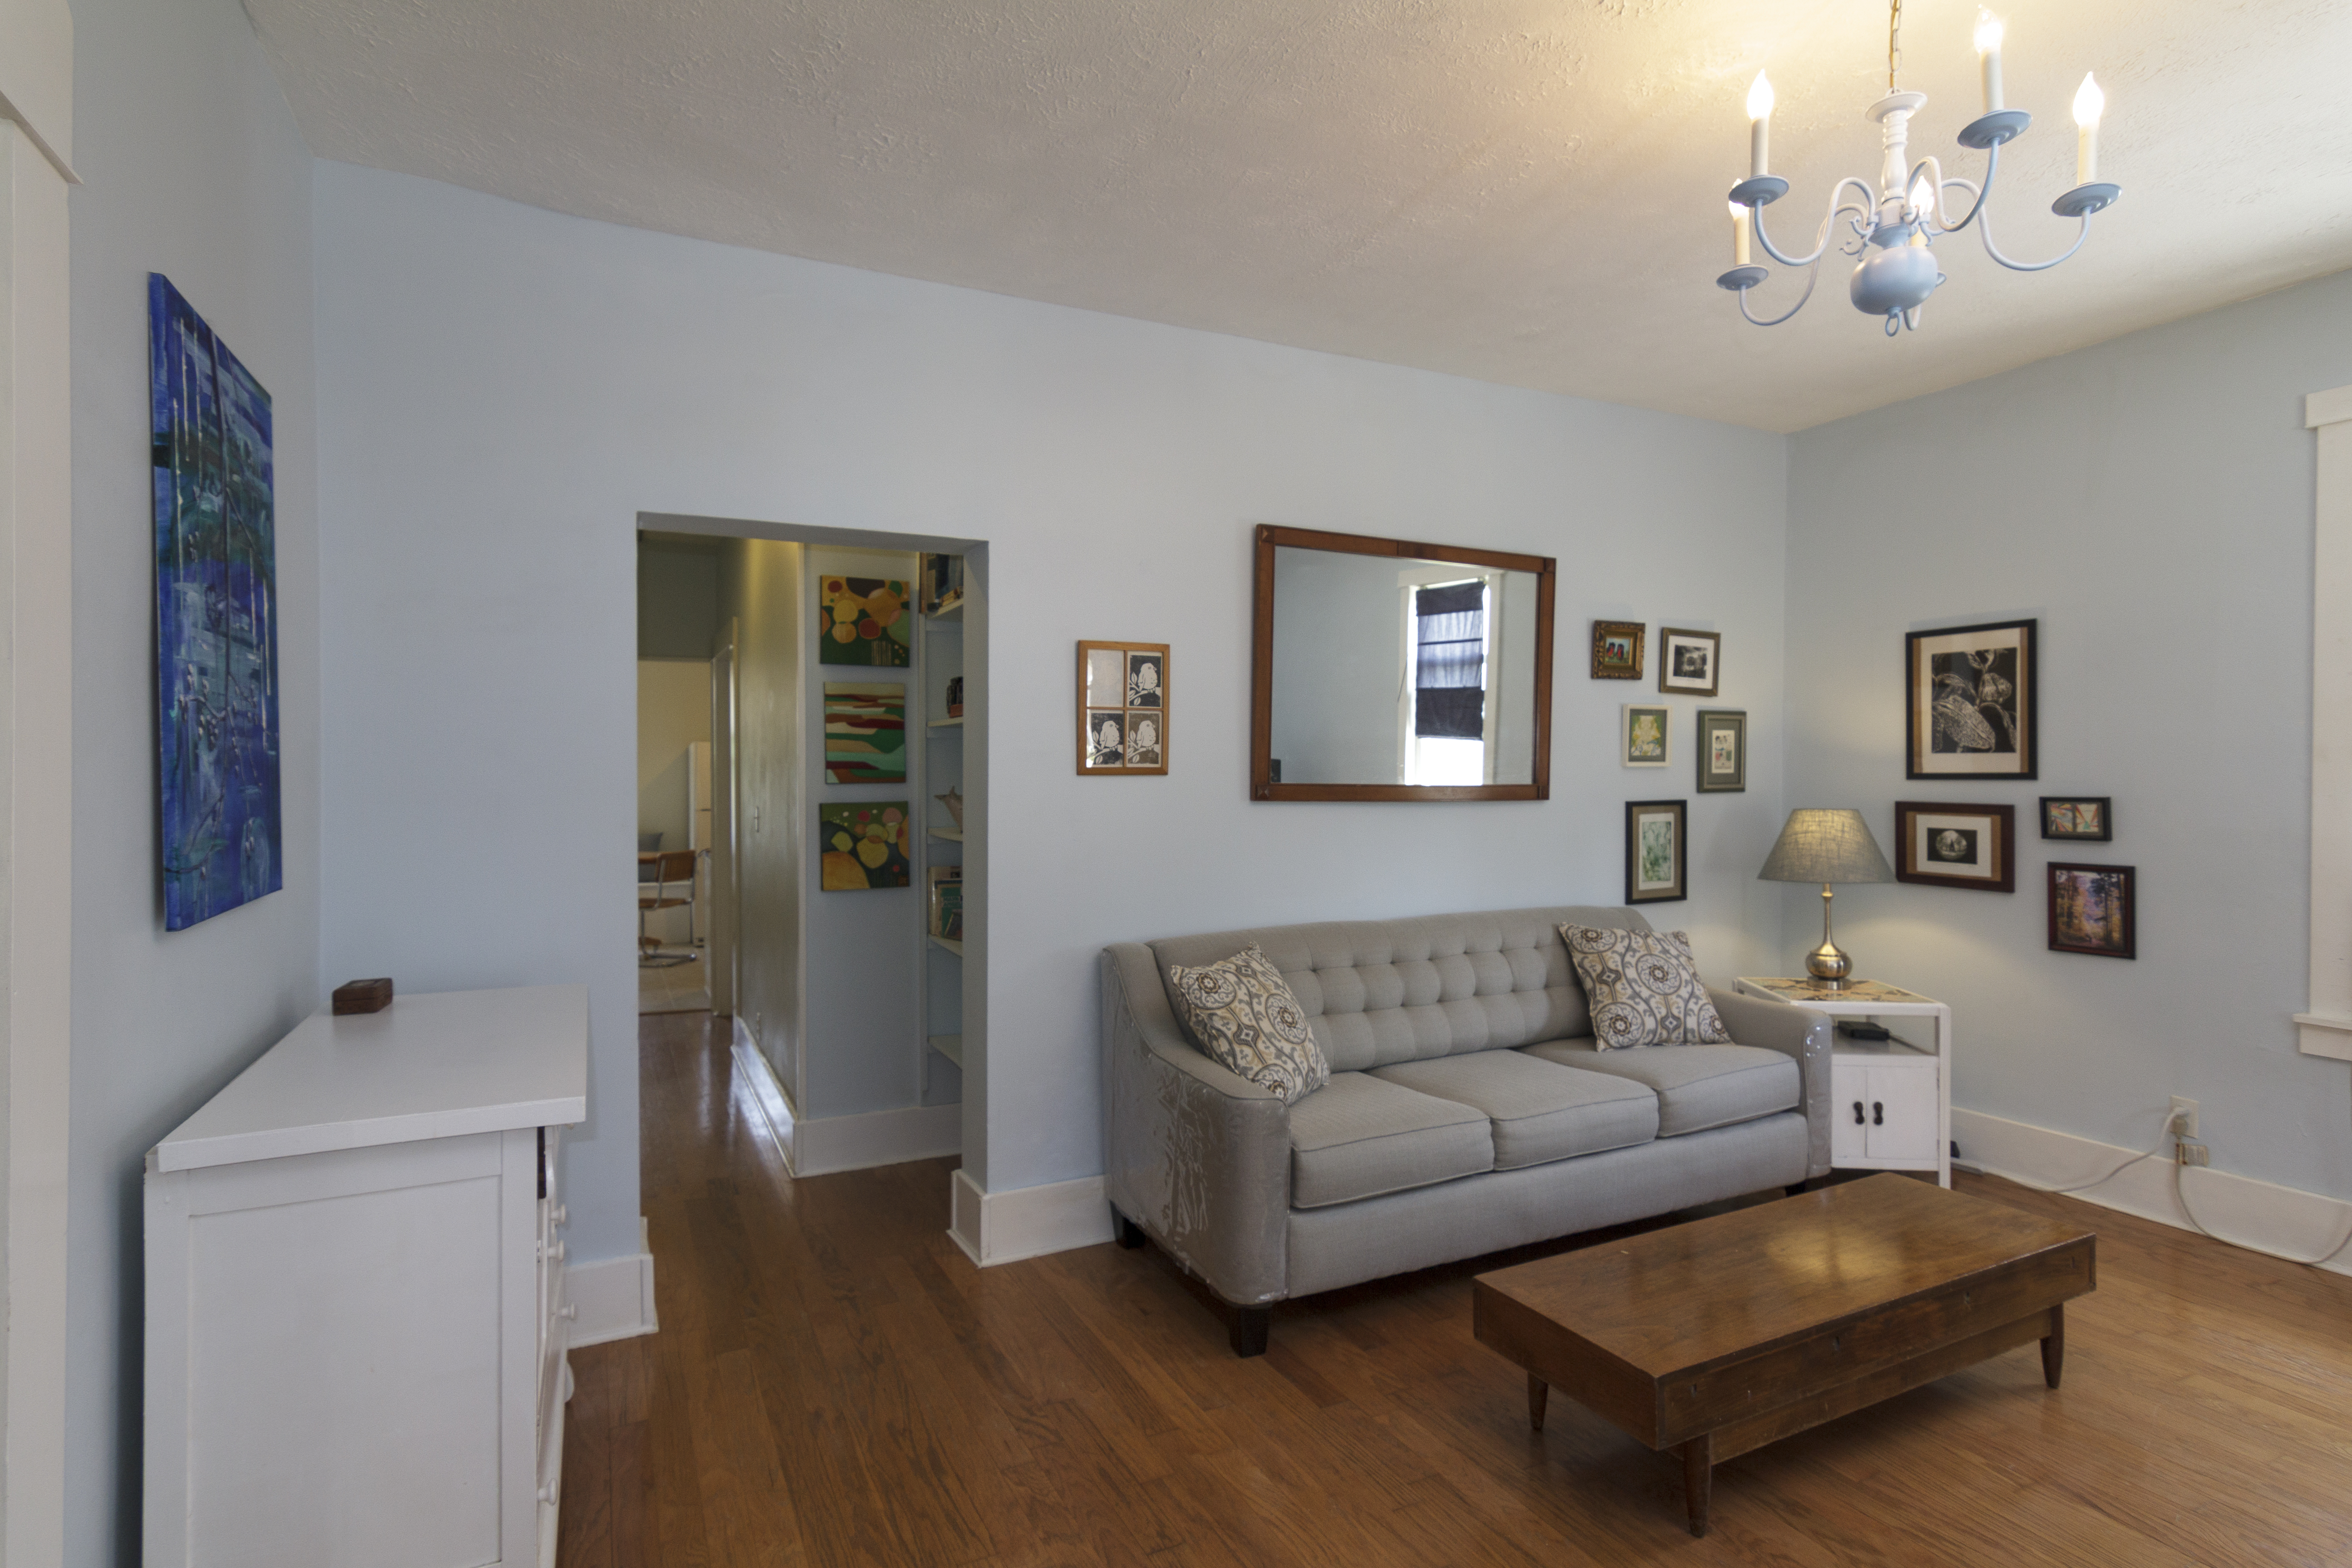 Inexpensive And Effective Staging Ideas To Sell A House Fast.